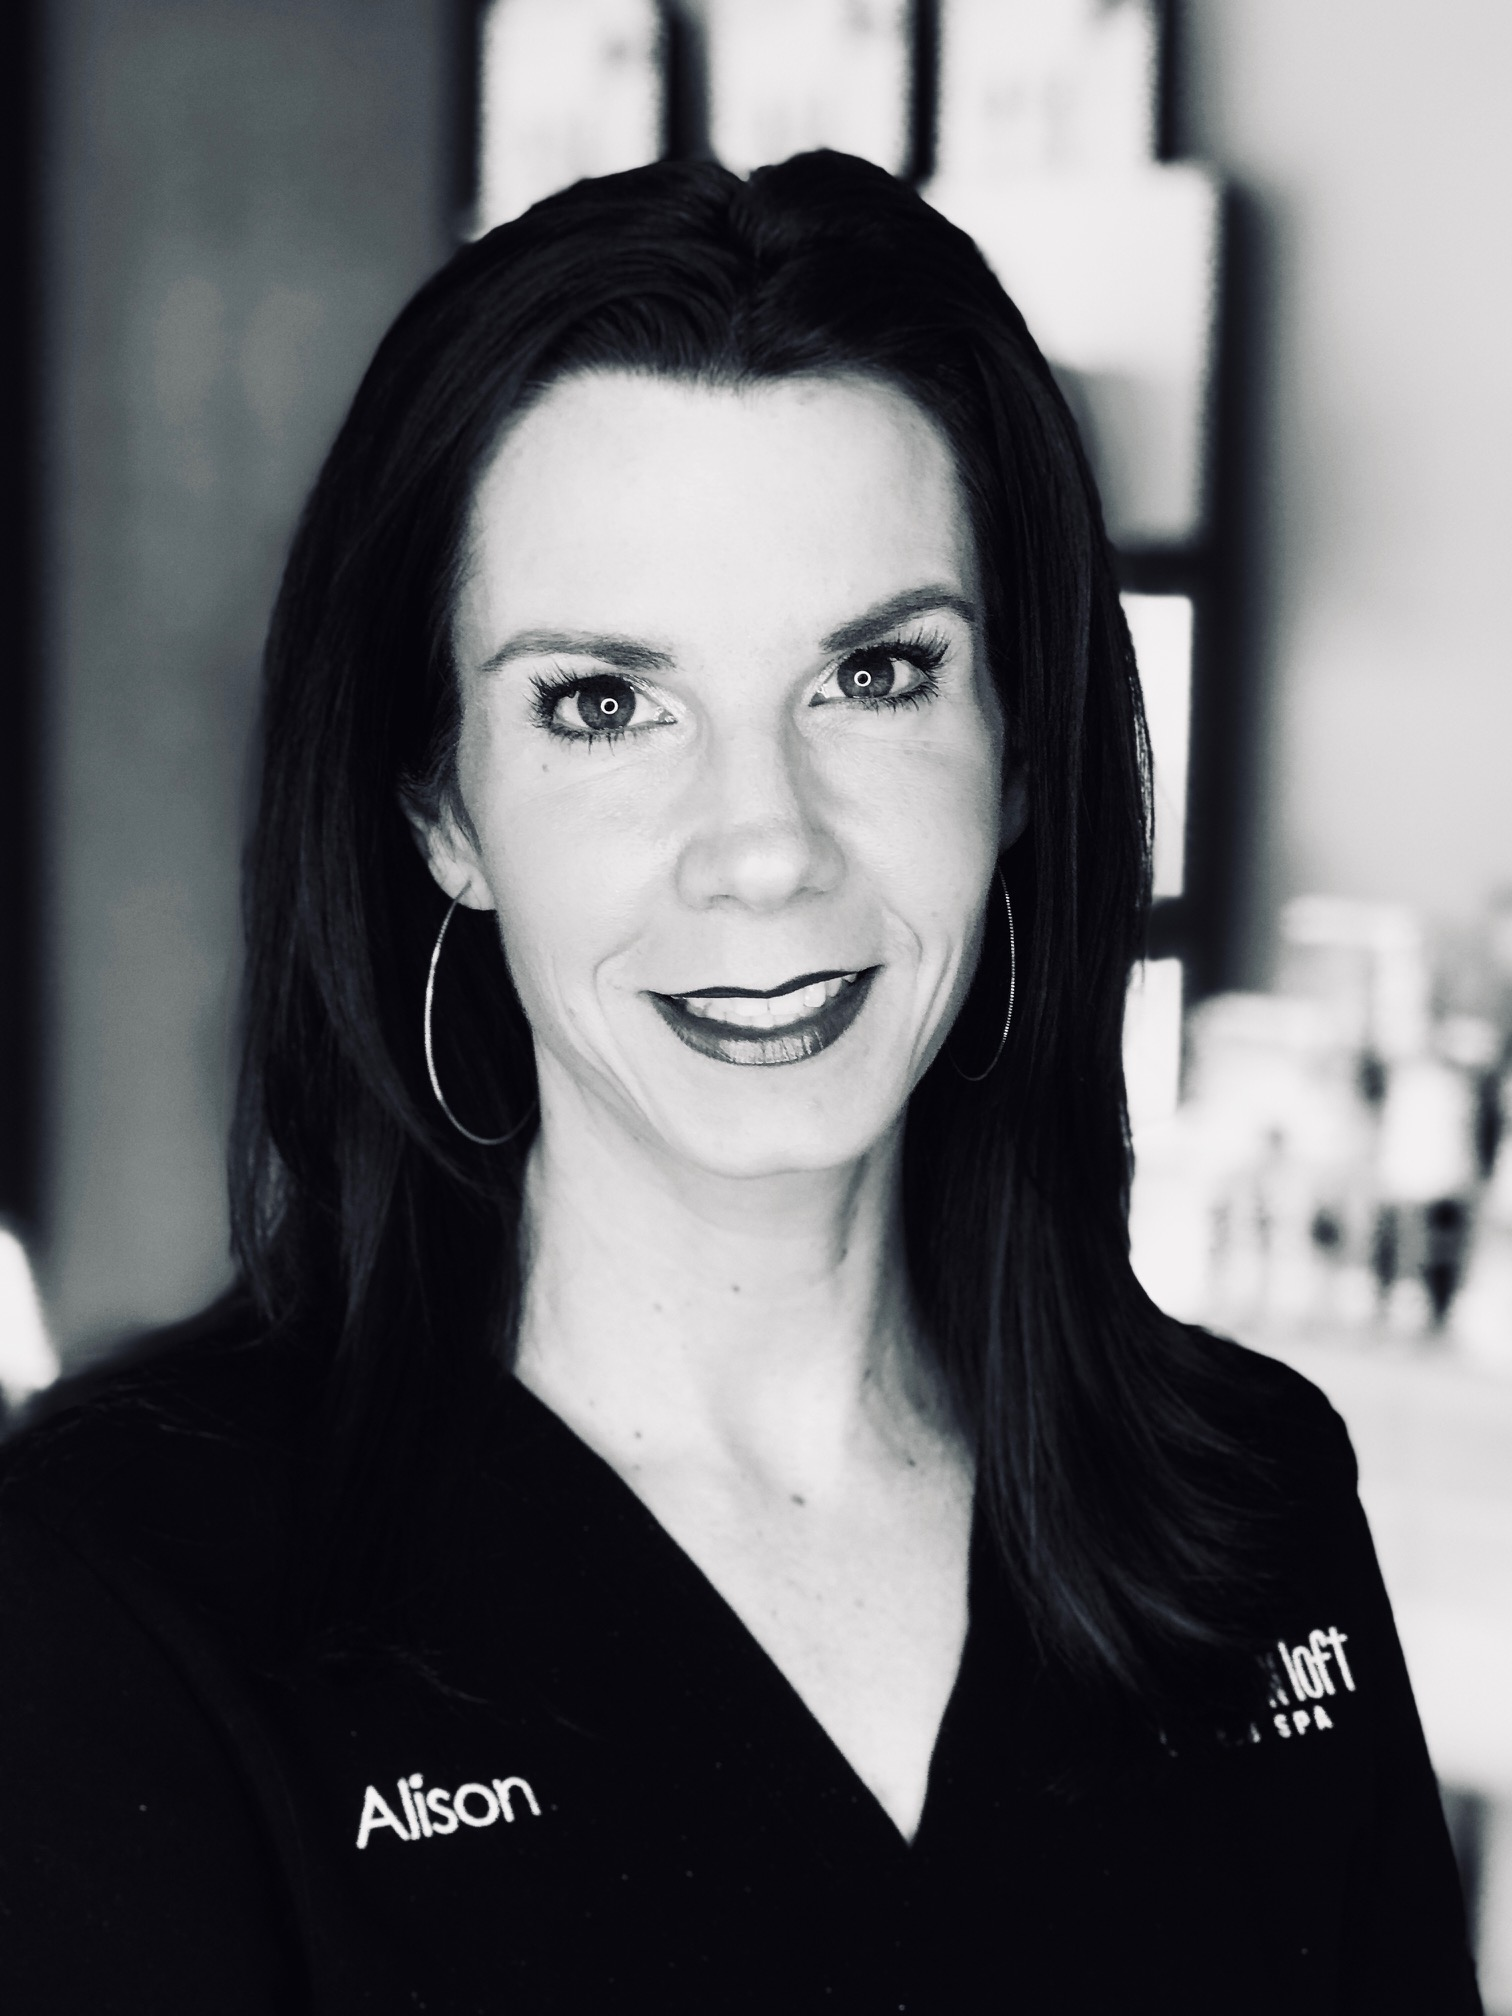 Alison Cantrall - Nurse Practitioner & Certified Cosmetic Injector